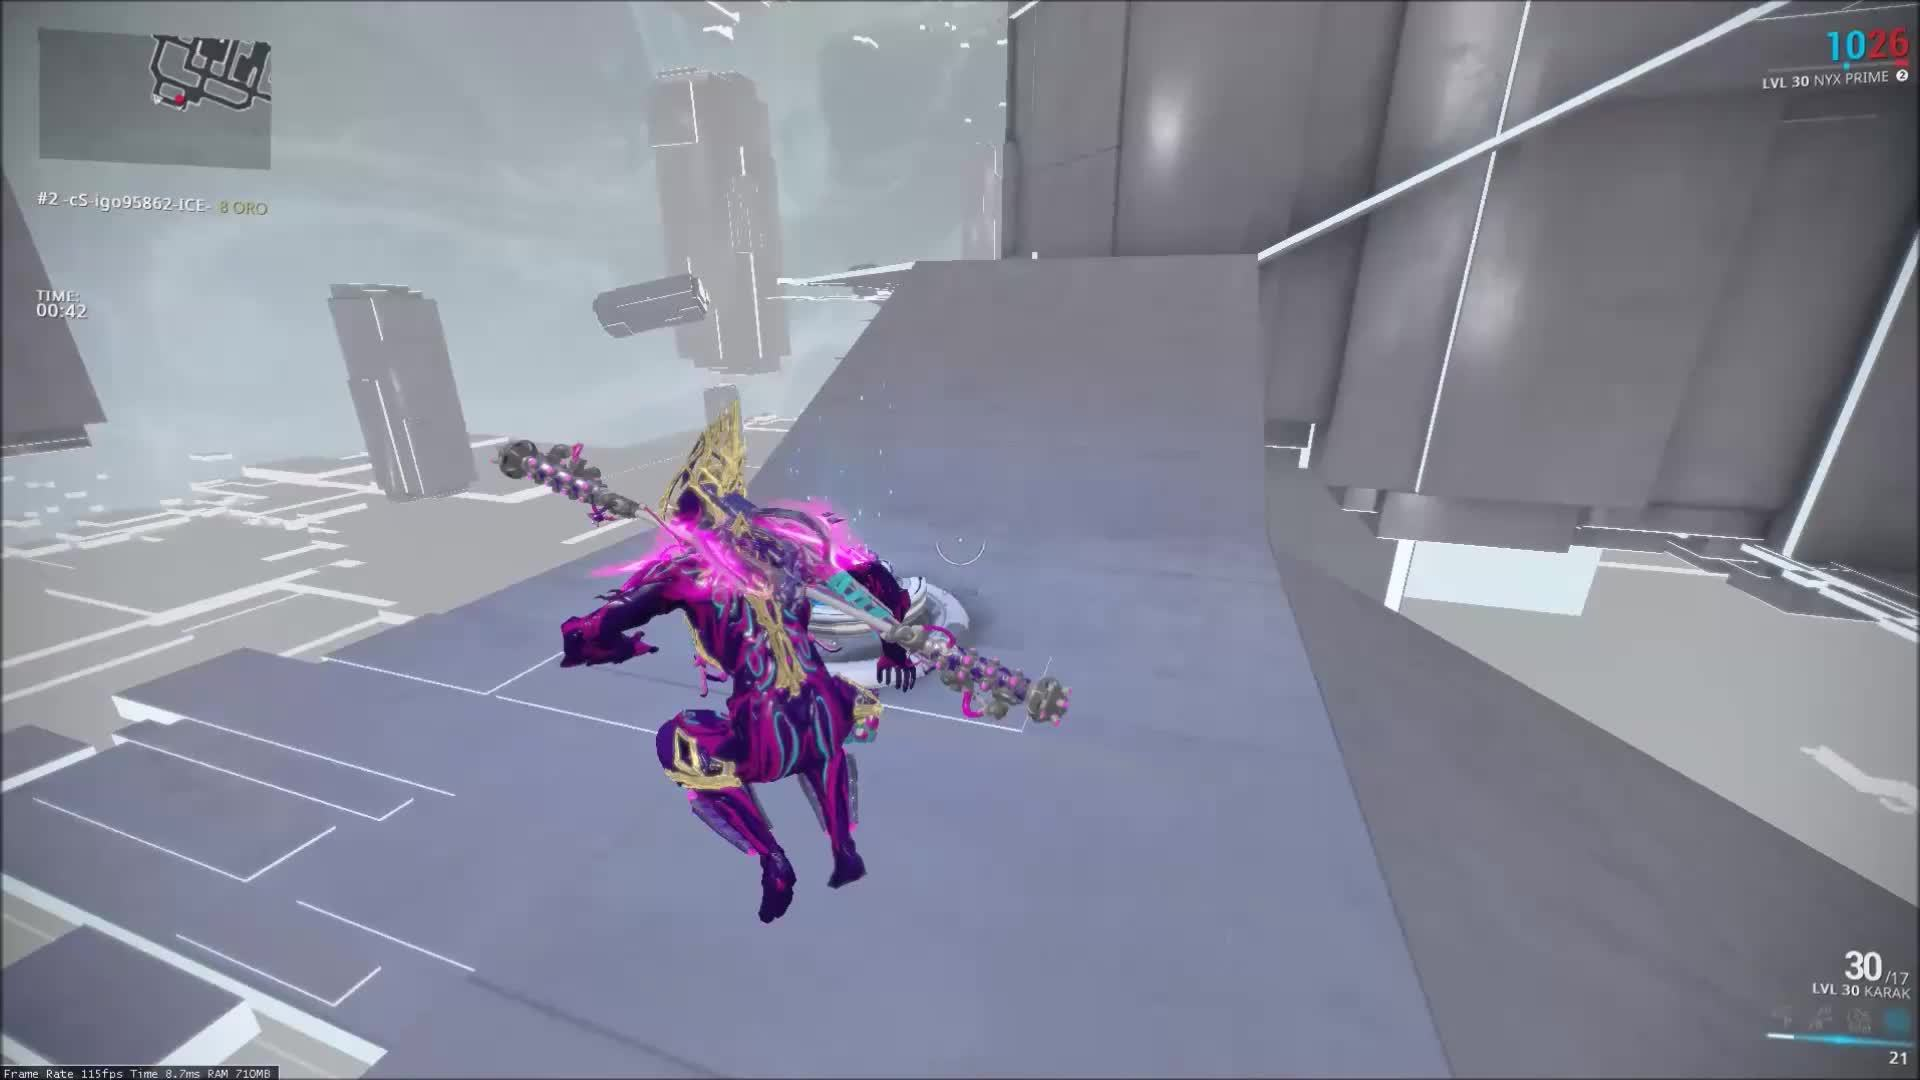 outoftheloop, warframe, Usung absorb to escape deathpit. GIFs